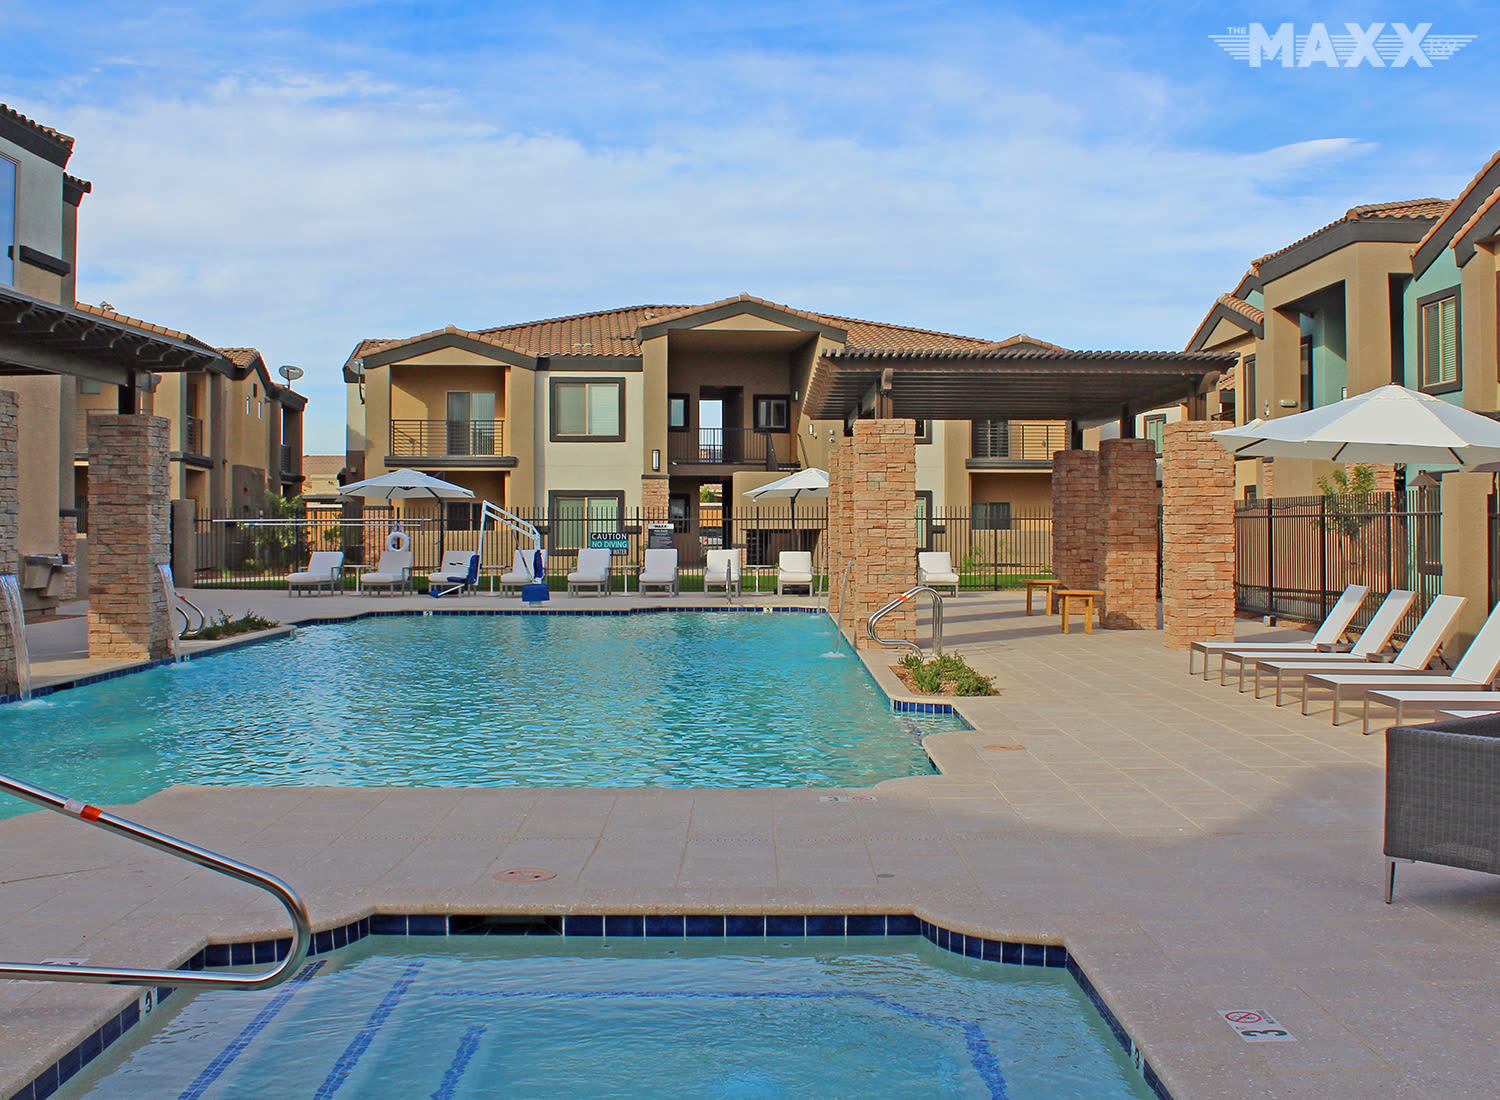 The Maxx 159 apartments in Goodyear, Arizona